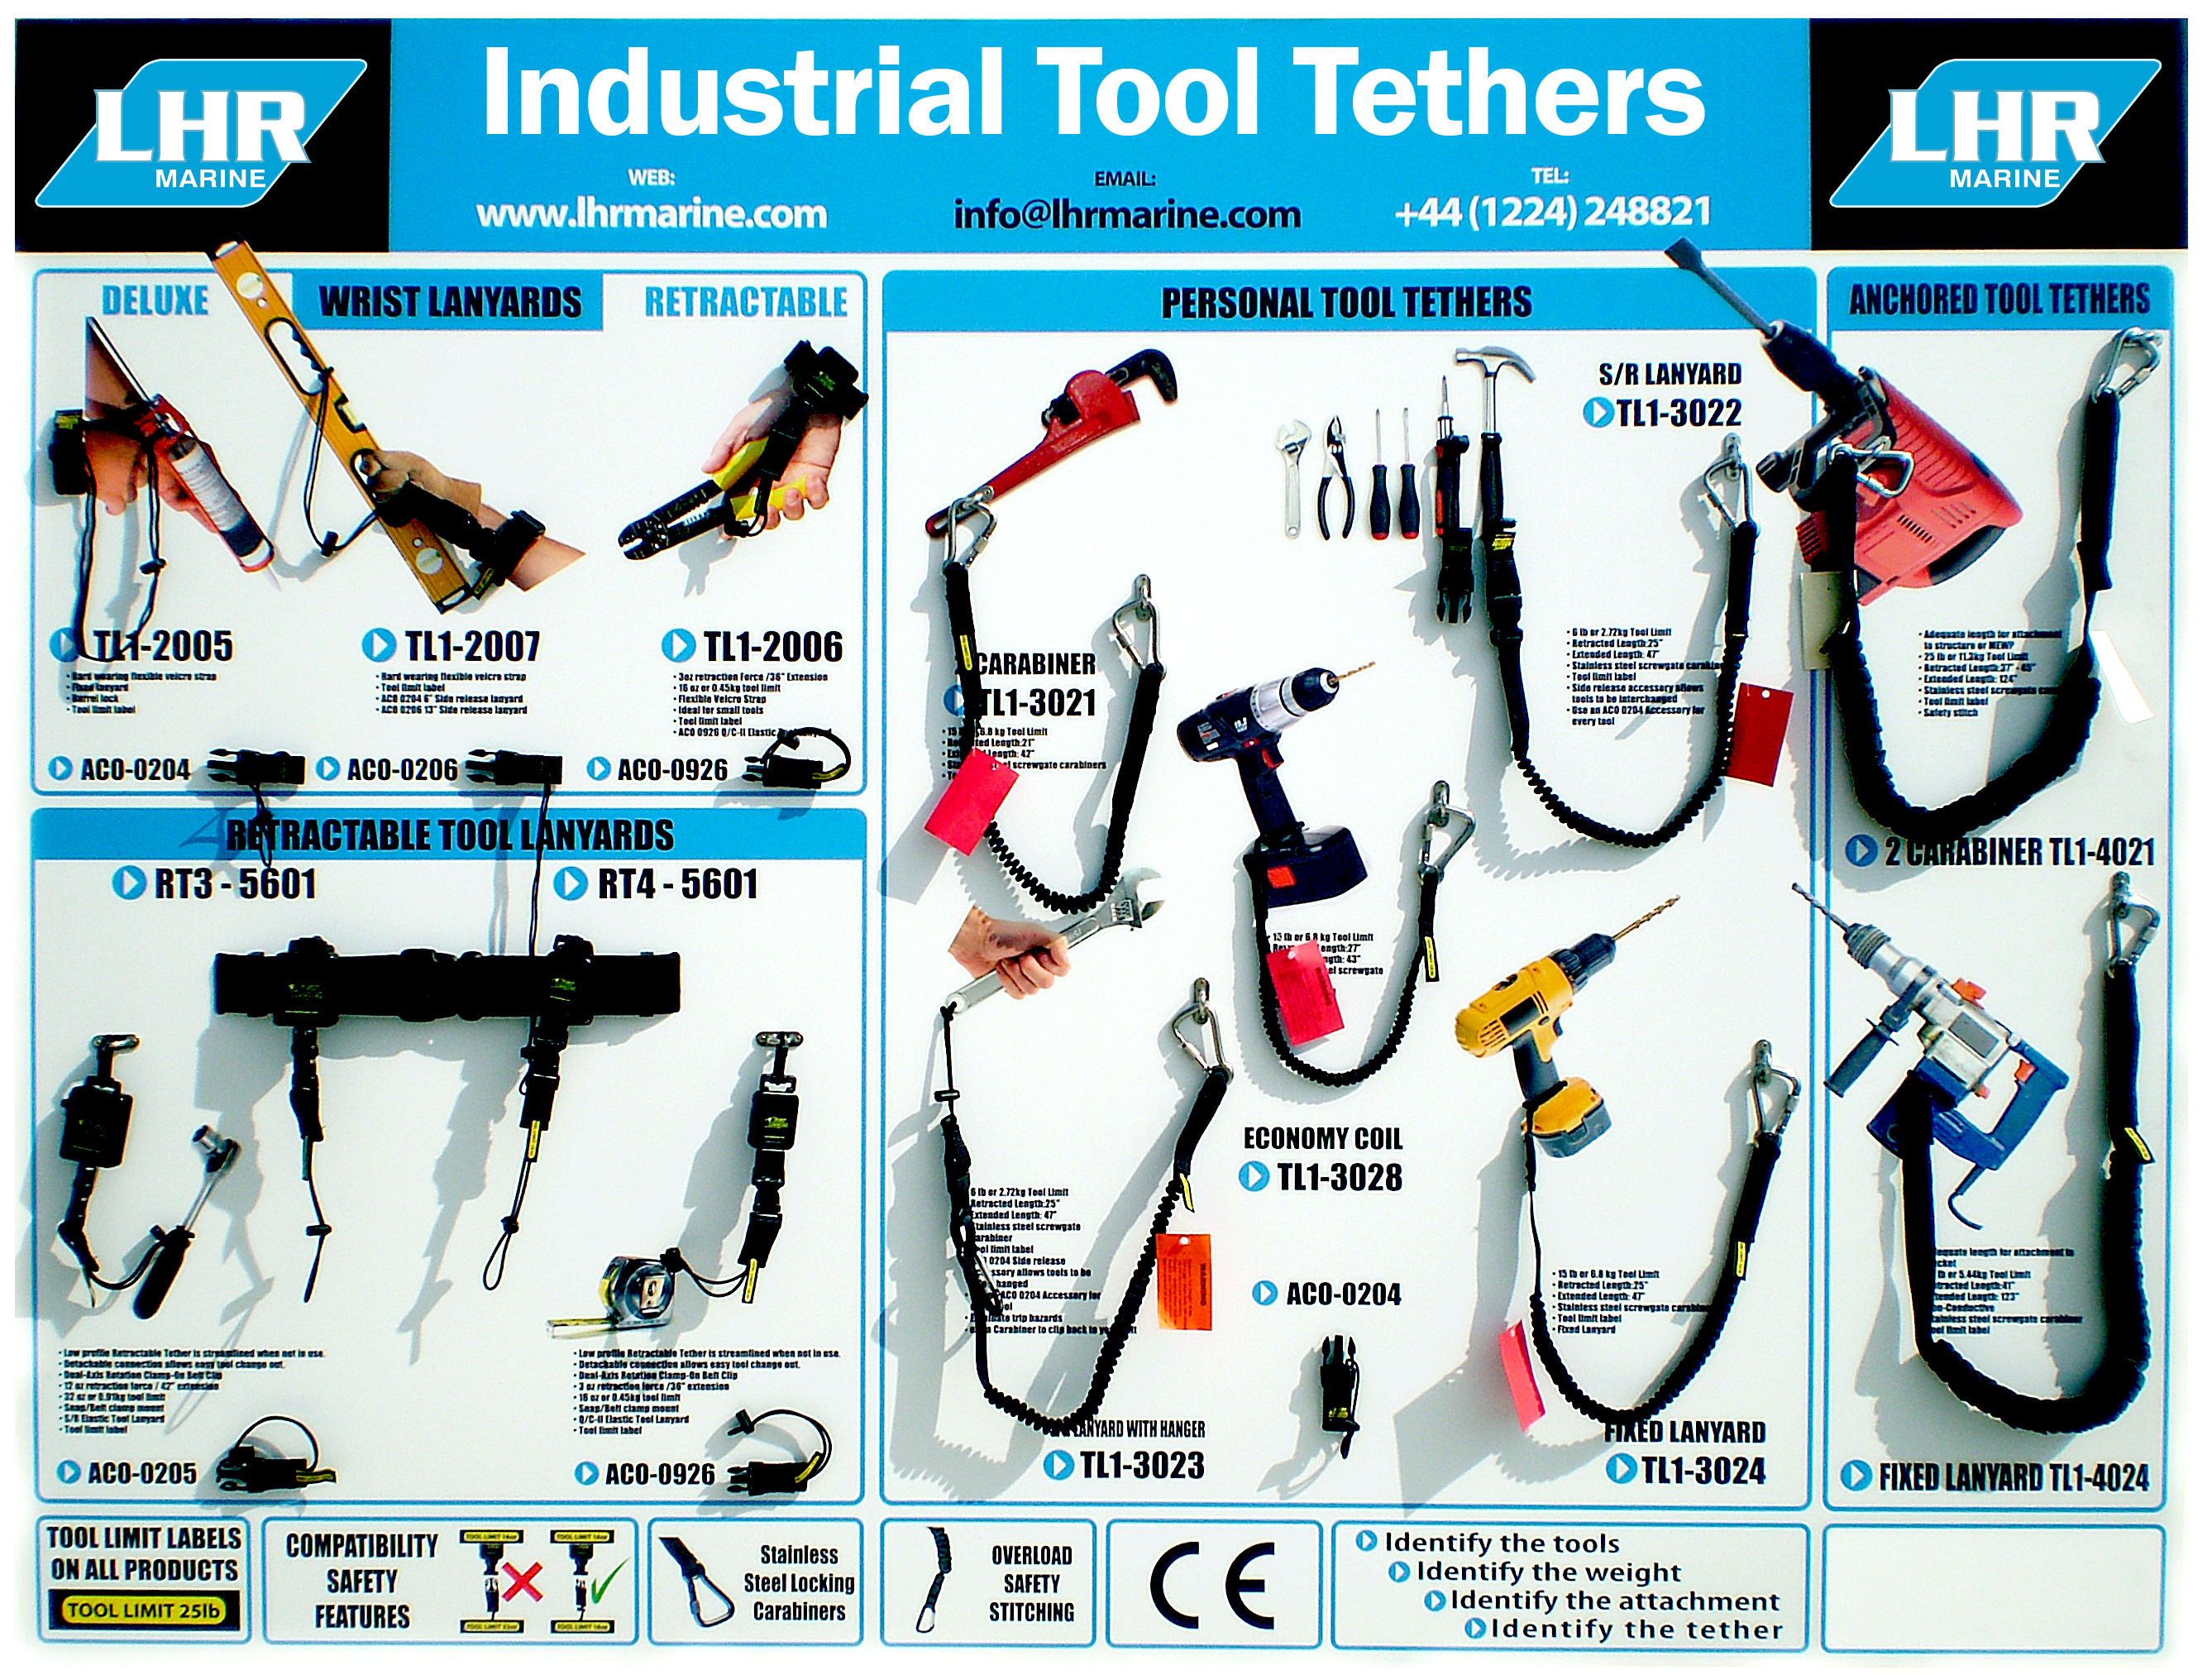 LHR Marine - Industrial Tool Tether Board